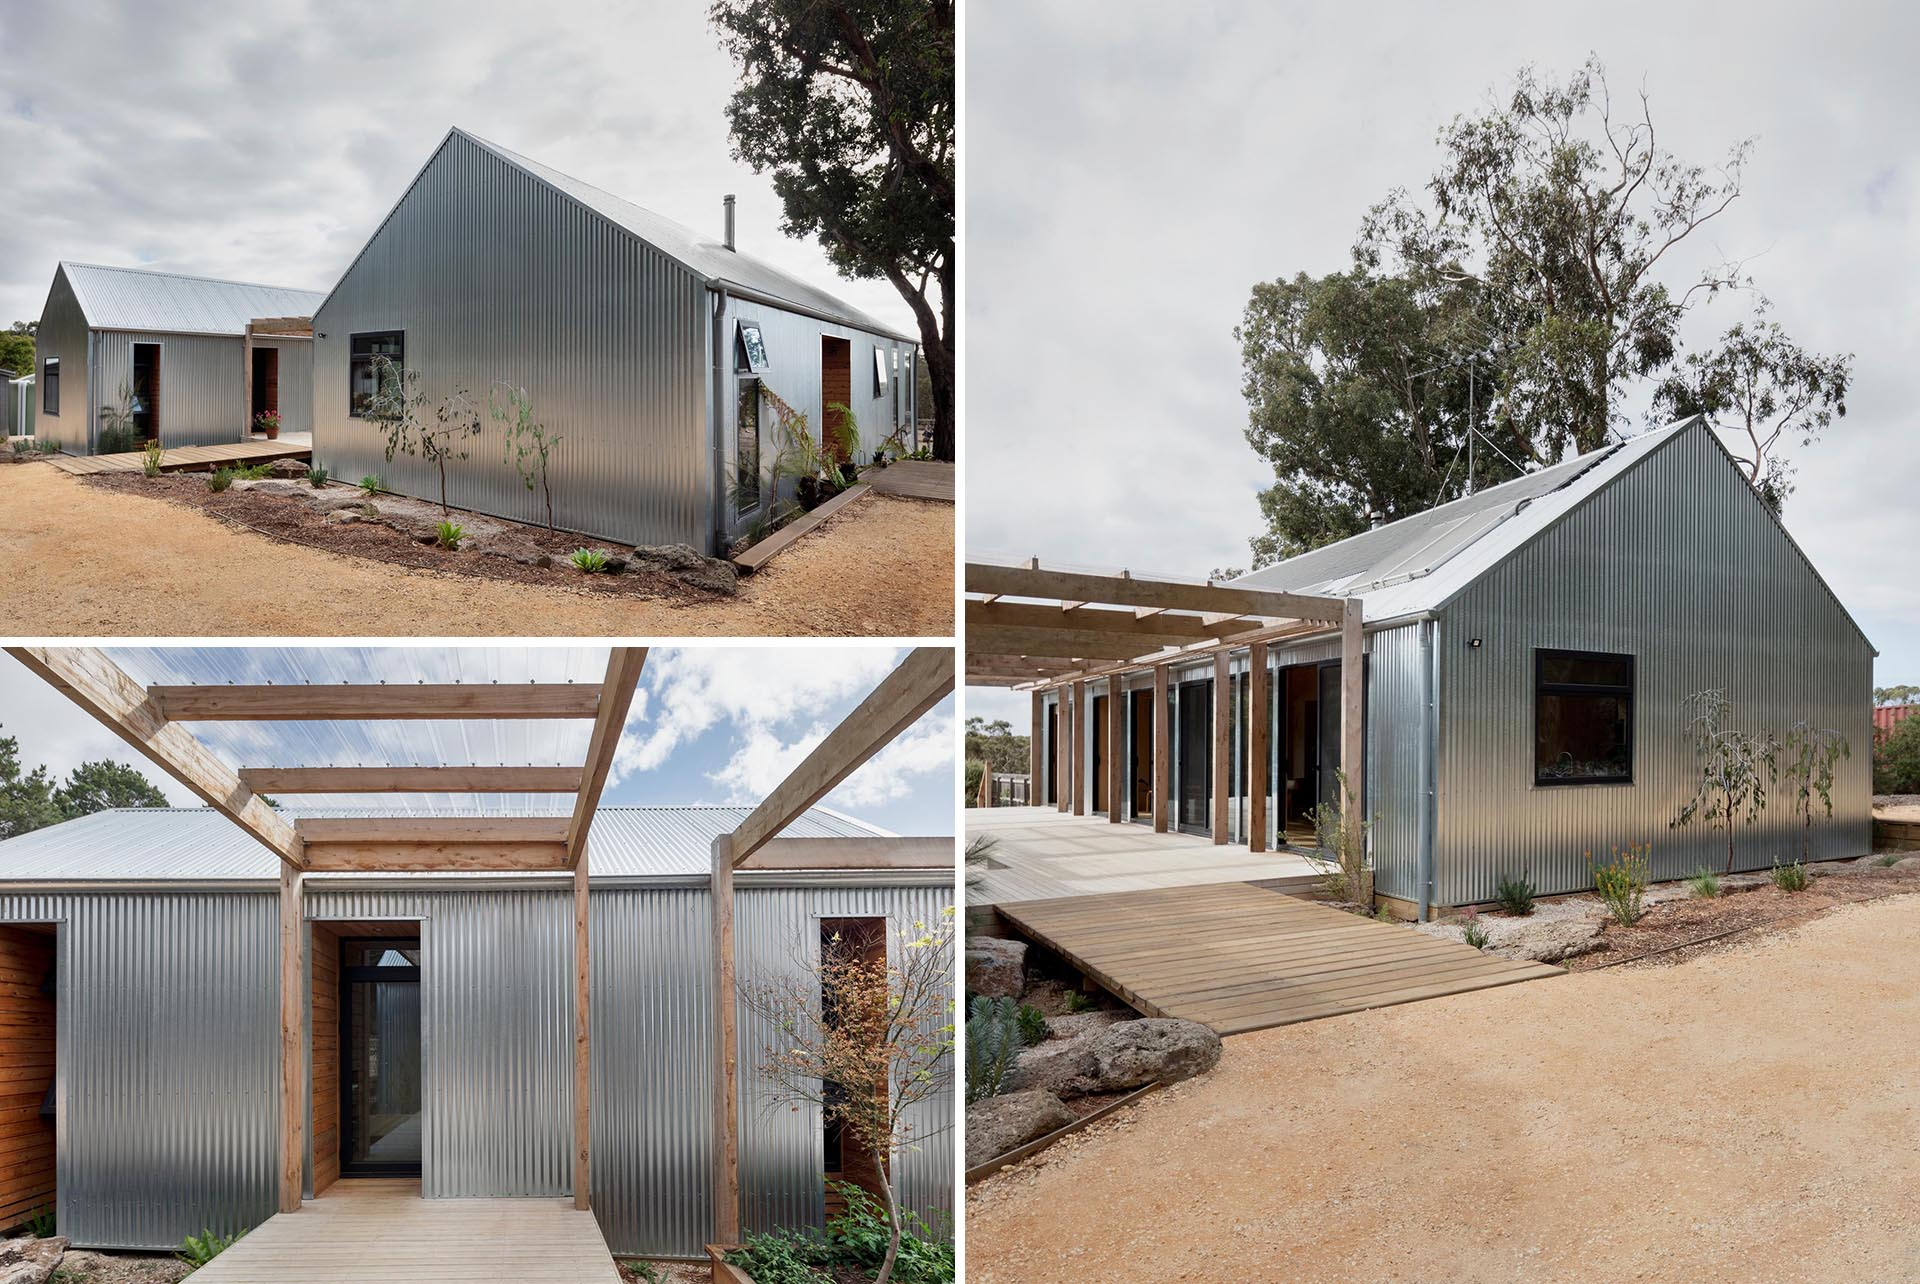 A modern house in rural Australia is covered in corrugated metal siding.